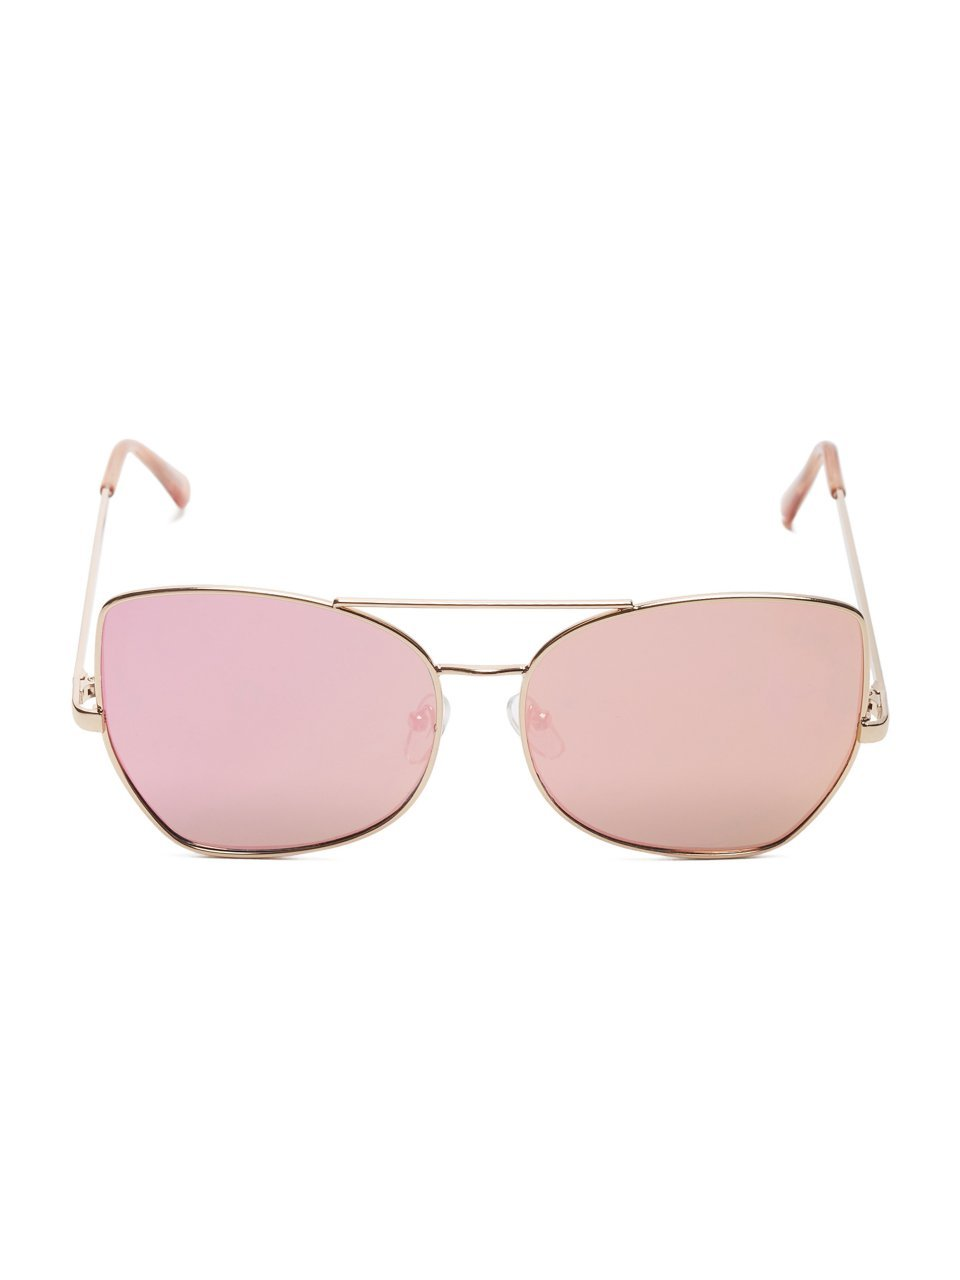 G by GUESS Women's Mirrored Top Bar Sunglasses by G by GUESS (Image #4)